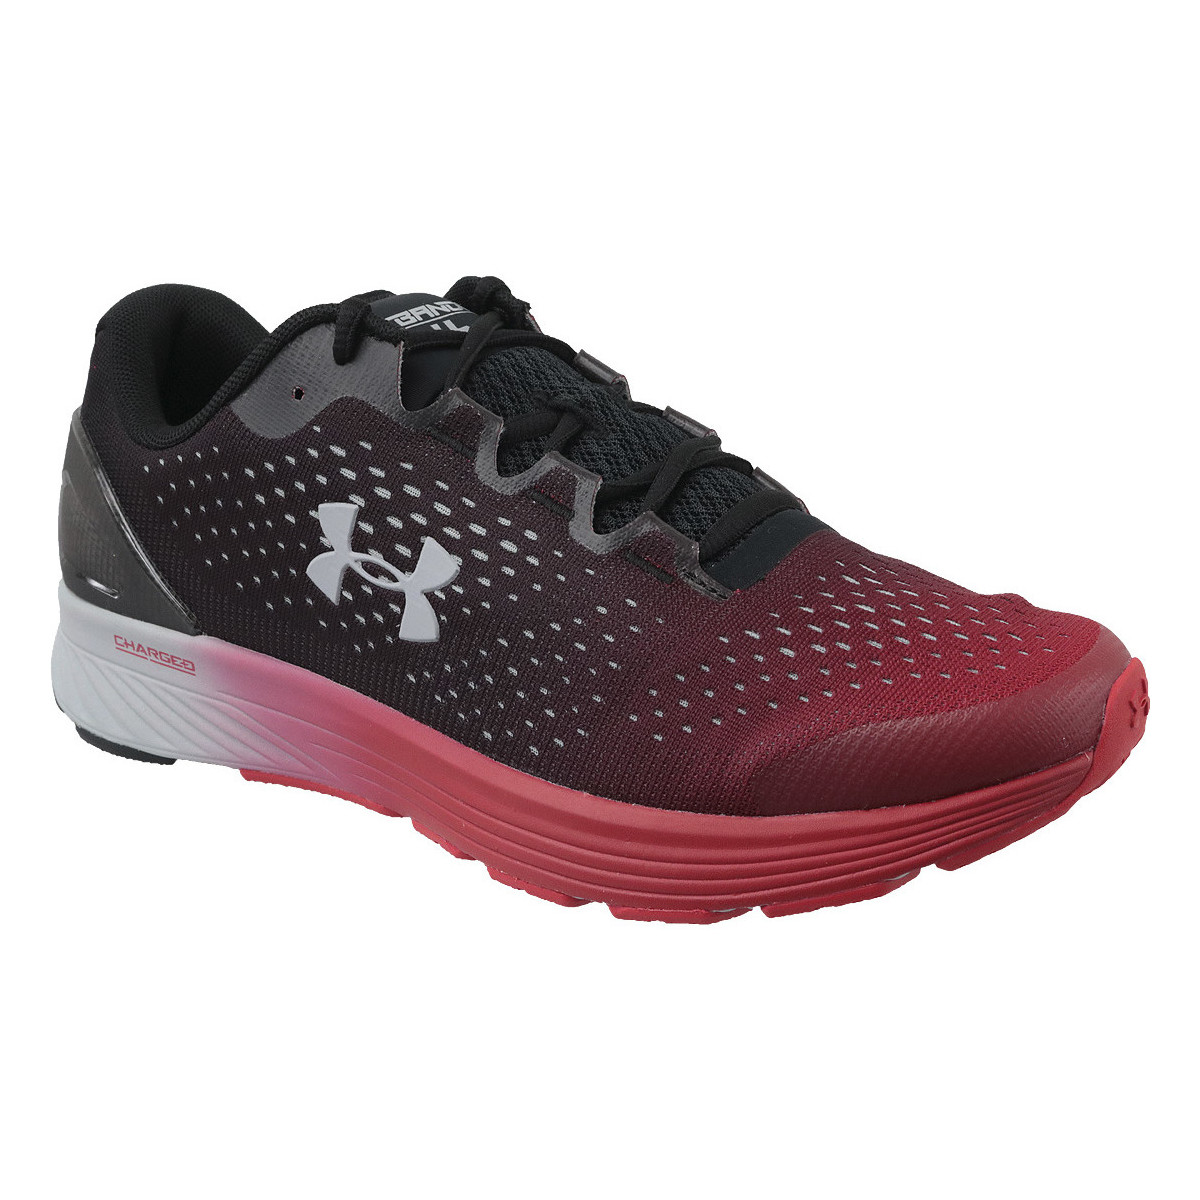 Sneakers Under Armour  UA Charged Bandit 4  3020319-005